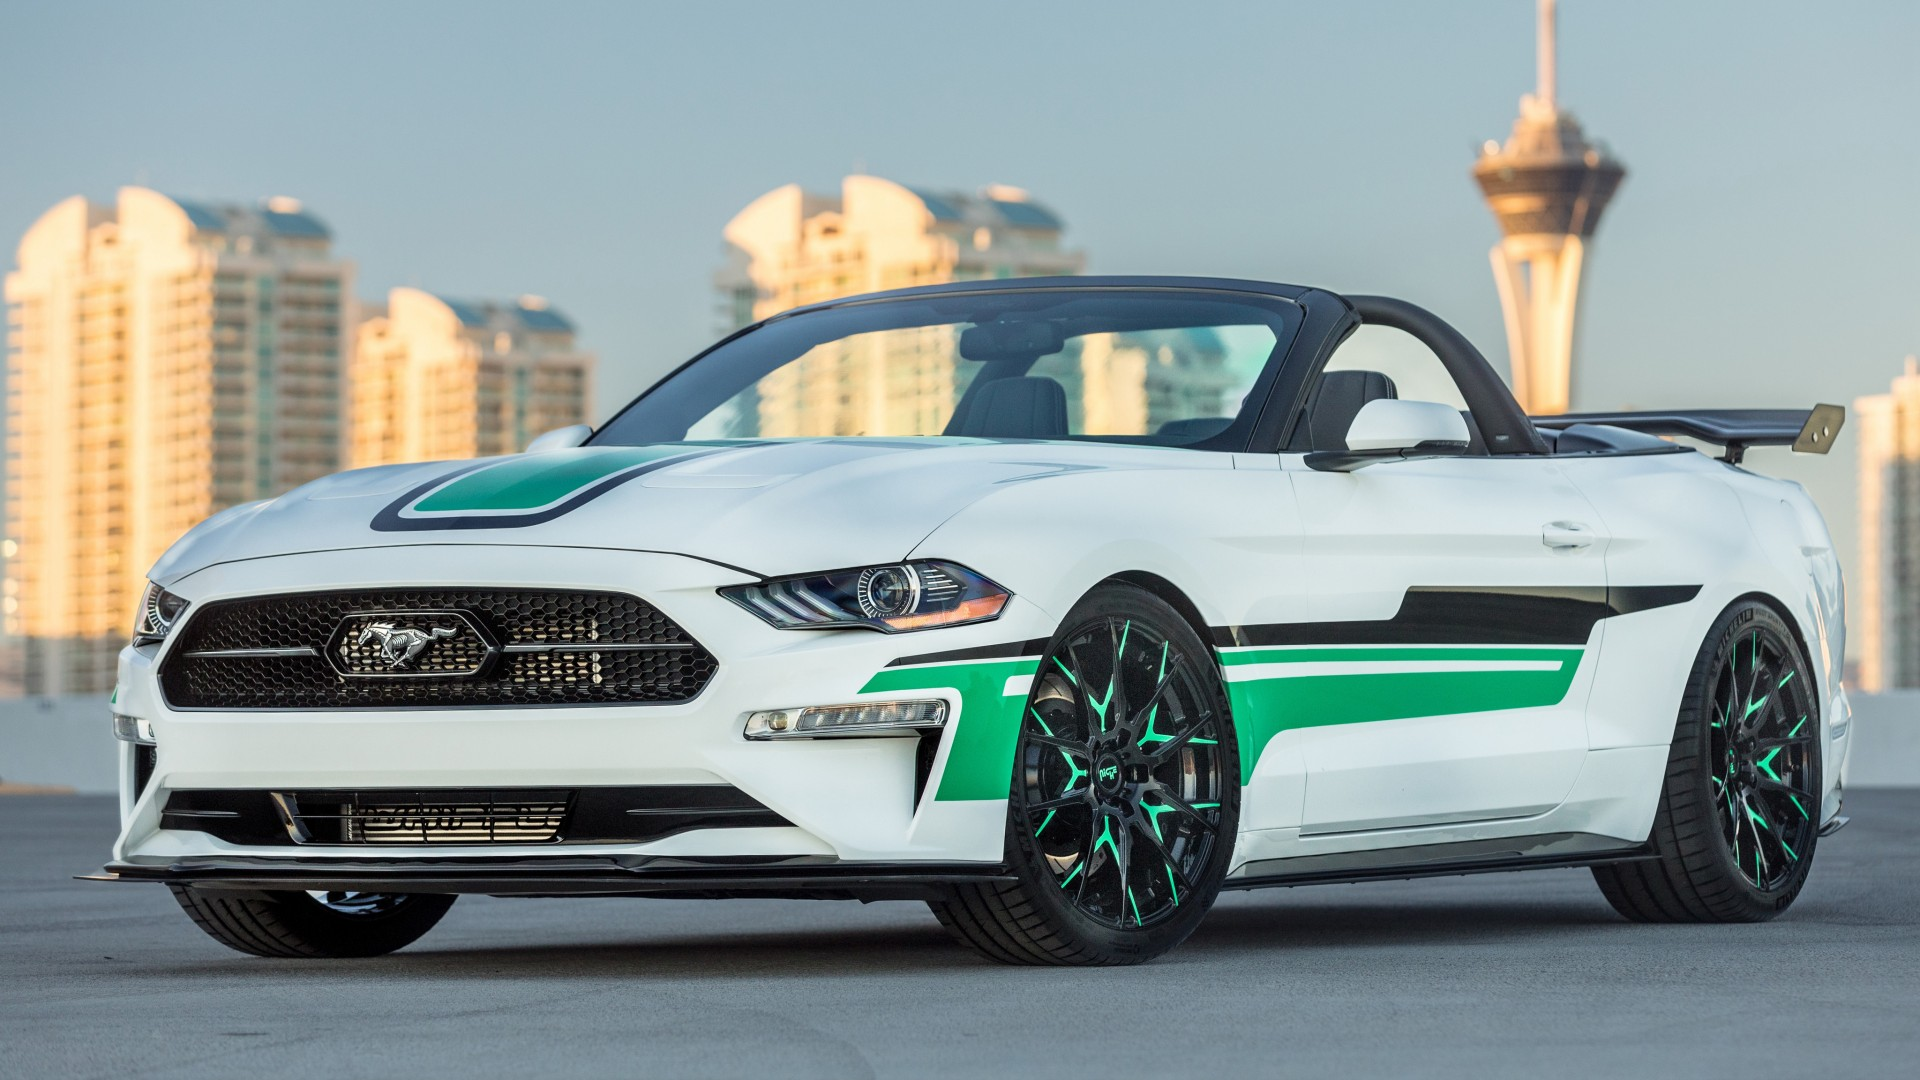 2018 MAD Industries Ford Mustang Convertible 4K Wallpaper ...